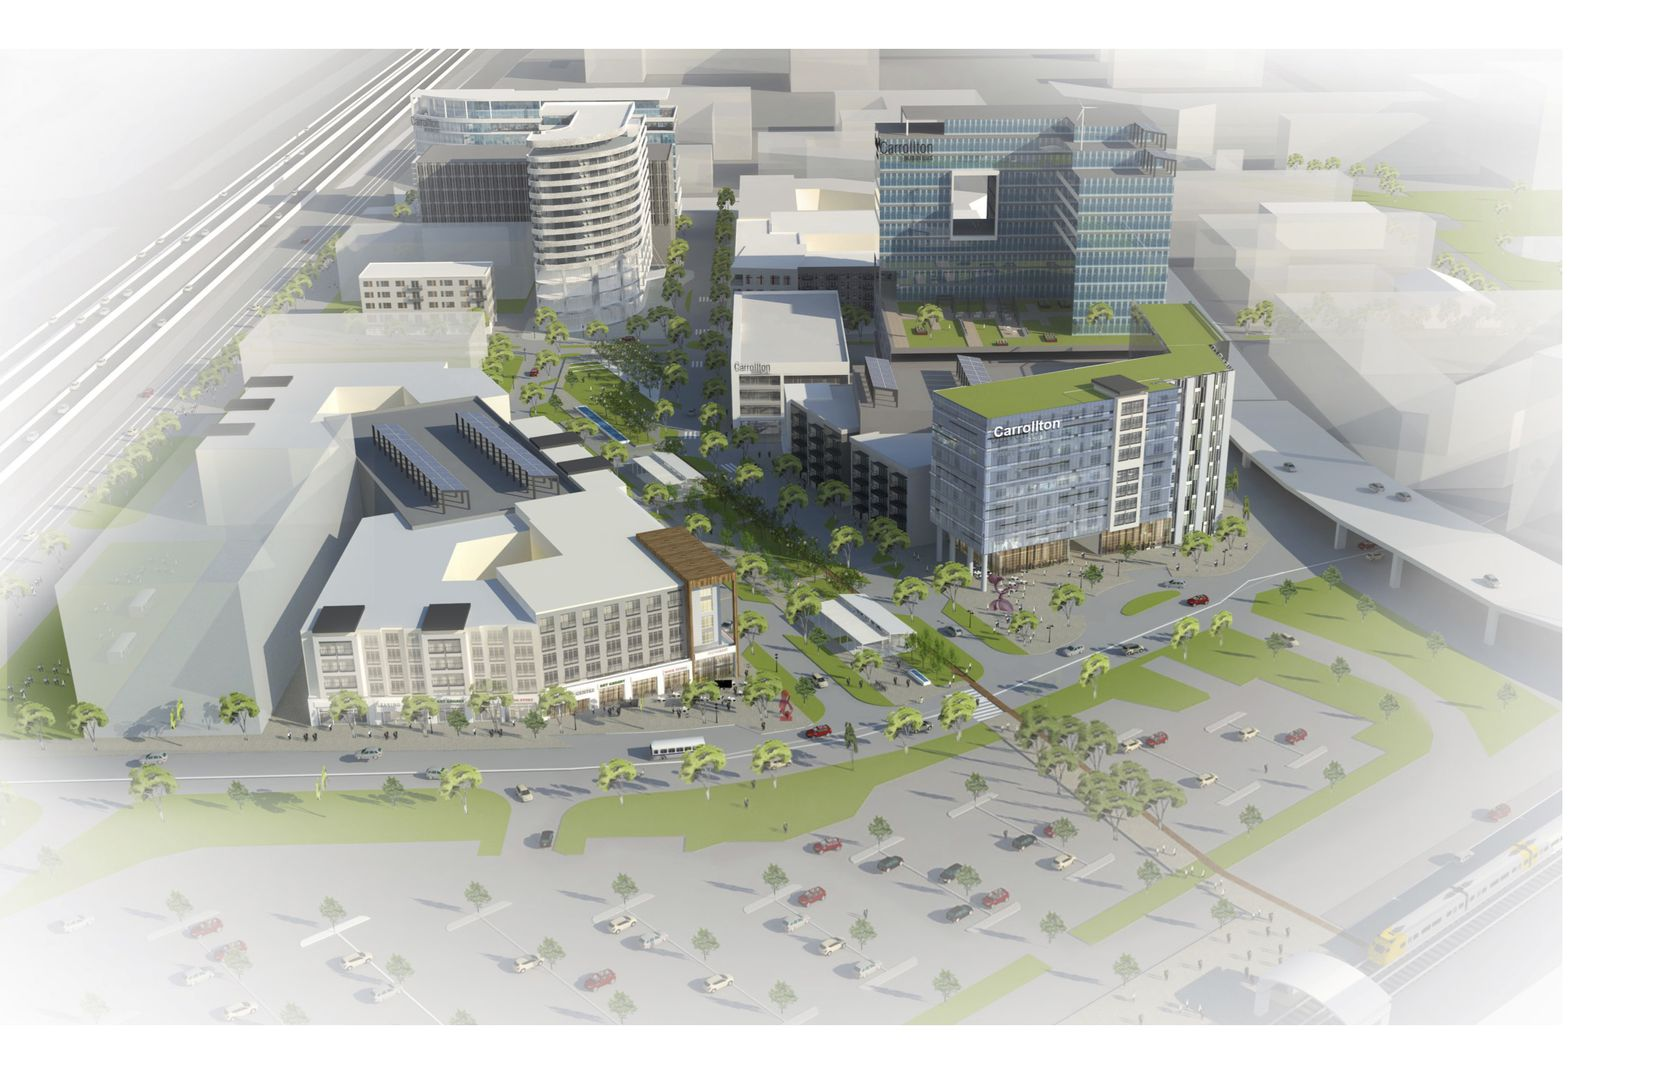 The planned Trinity Mills Urban Village will occupy about 26 acres.